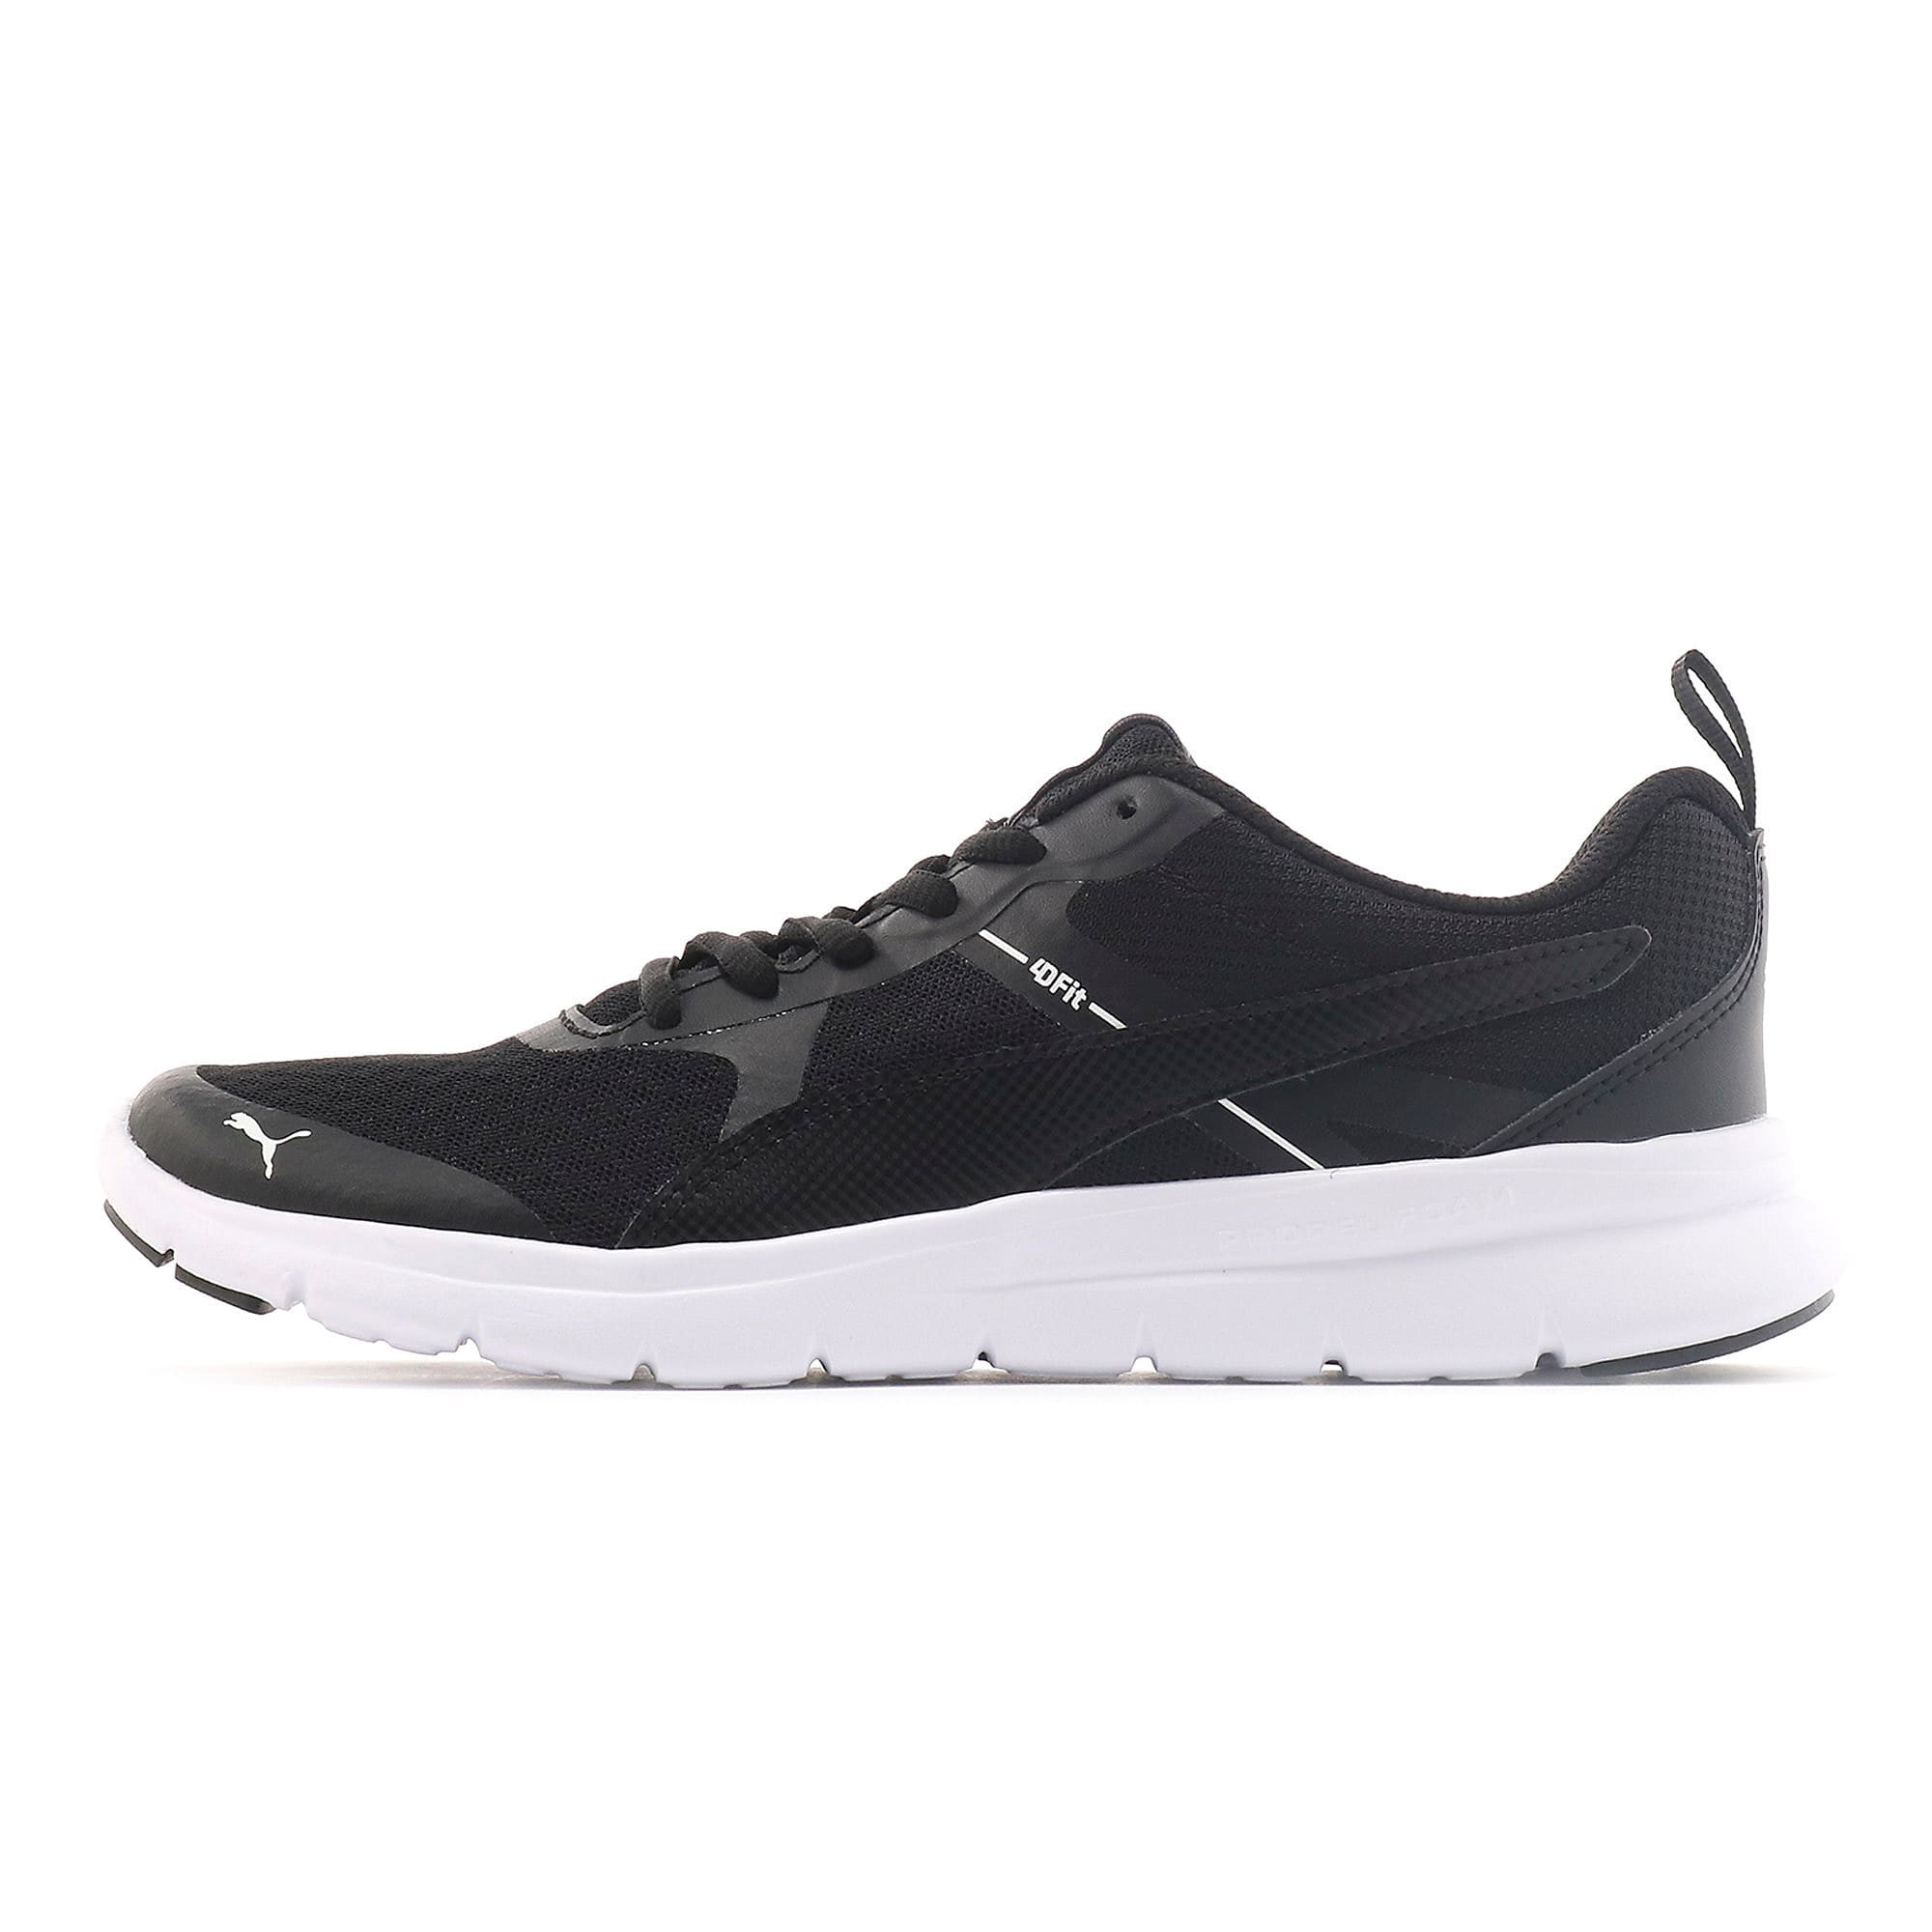 Thumbnail 1 of Essential Flex Youth Trainers, Puma Black-Puma Black, medium-IND